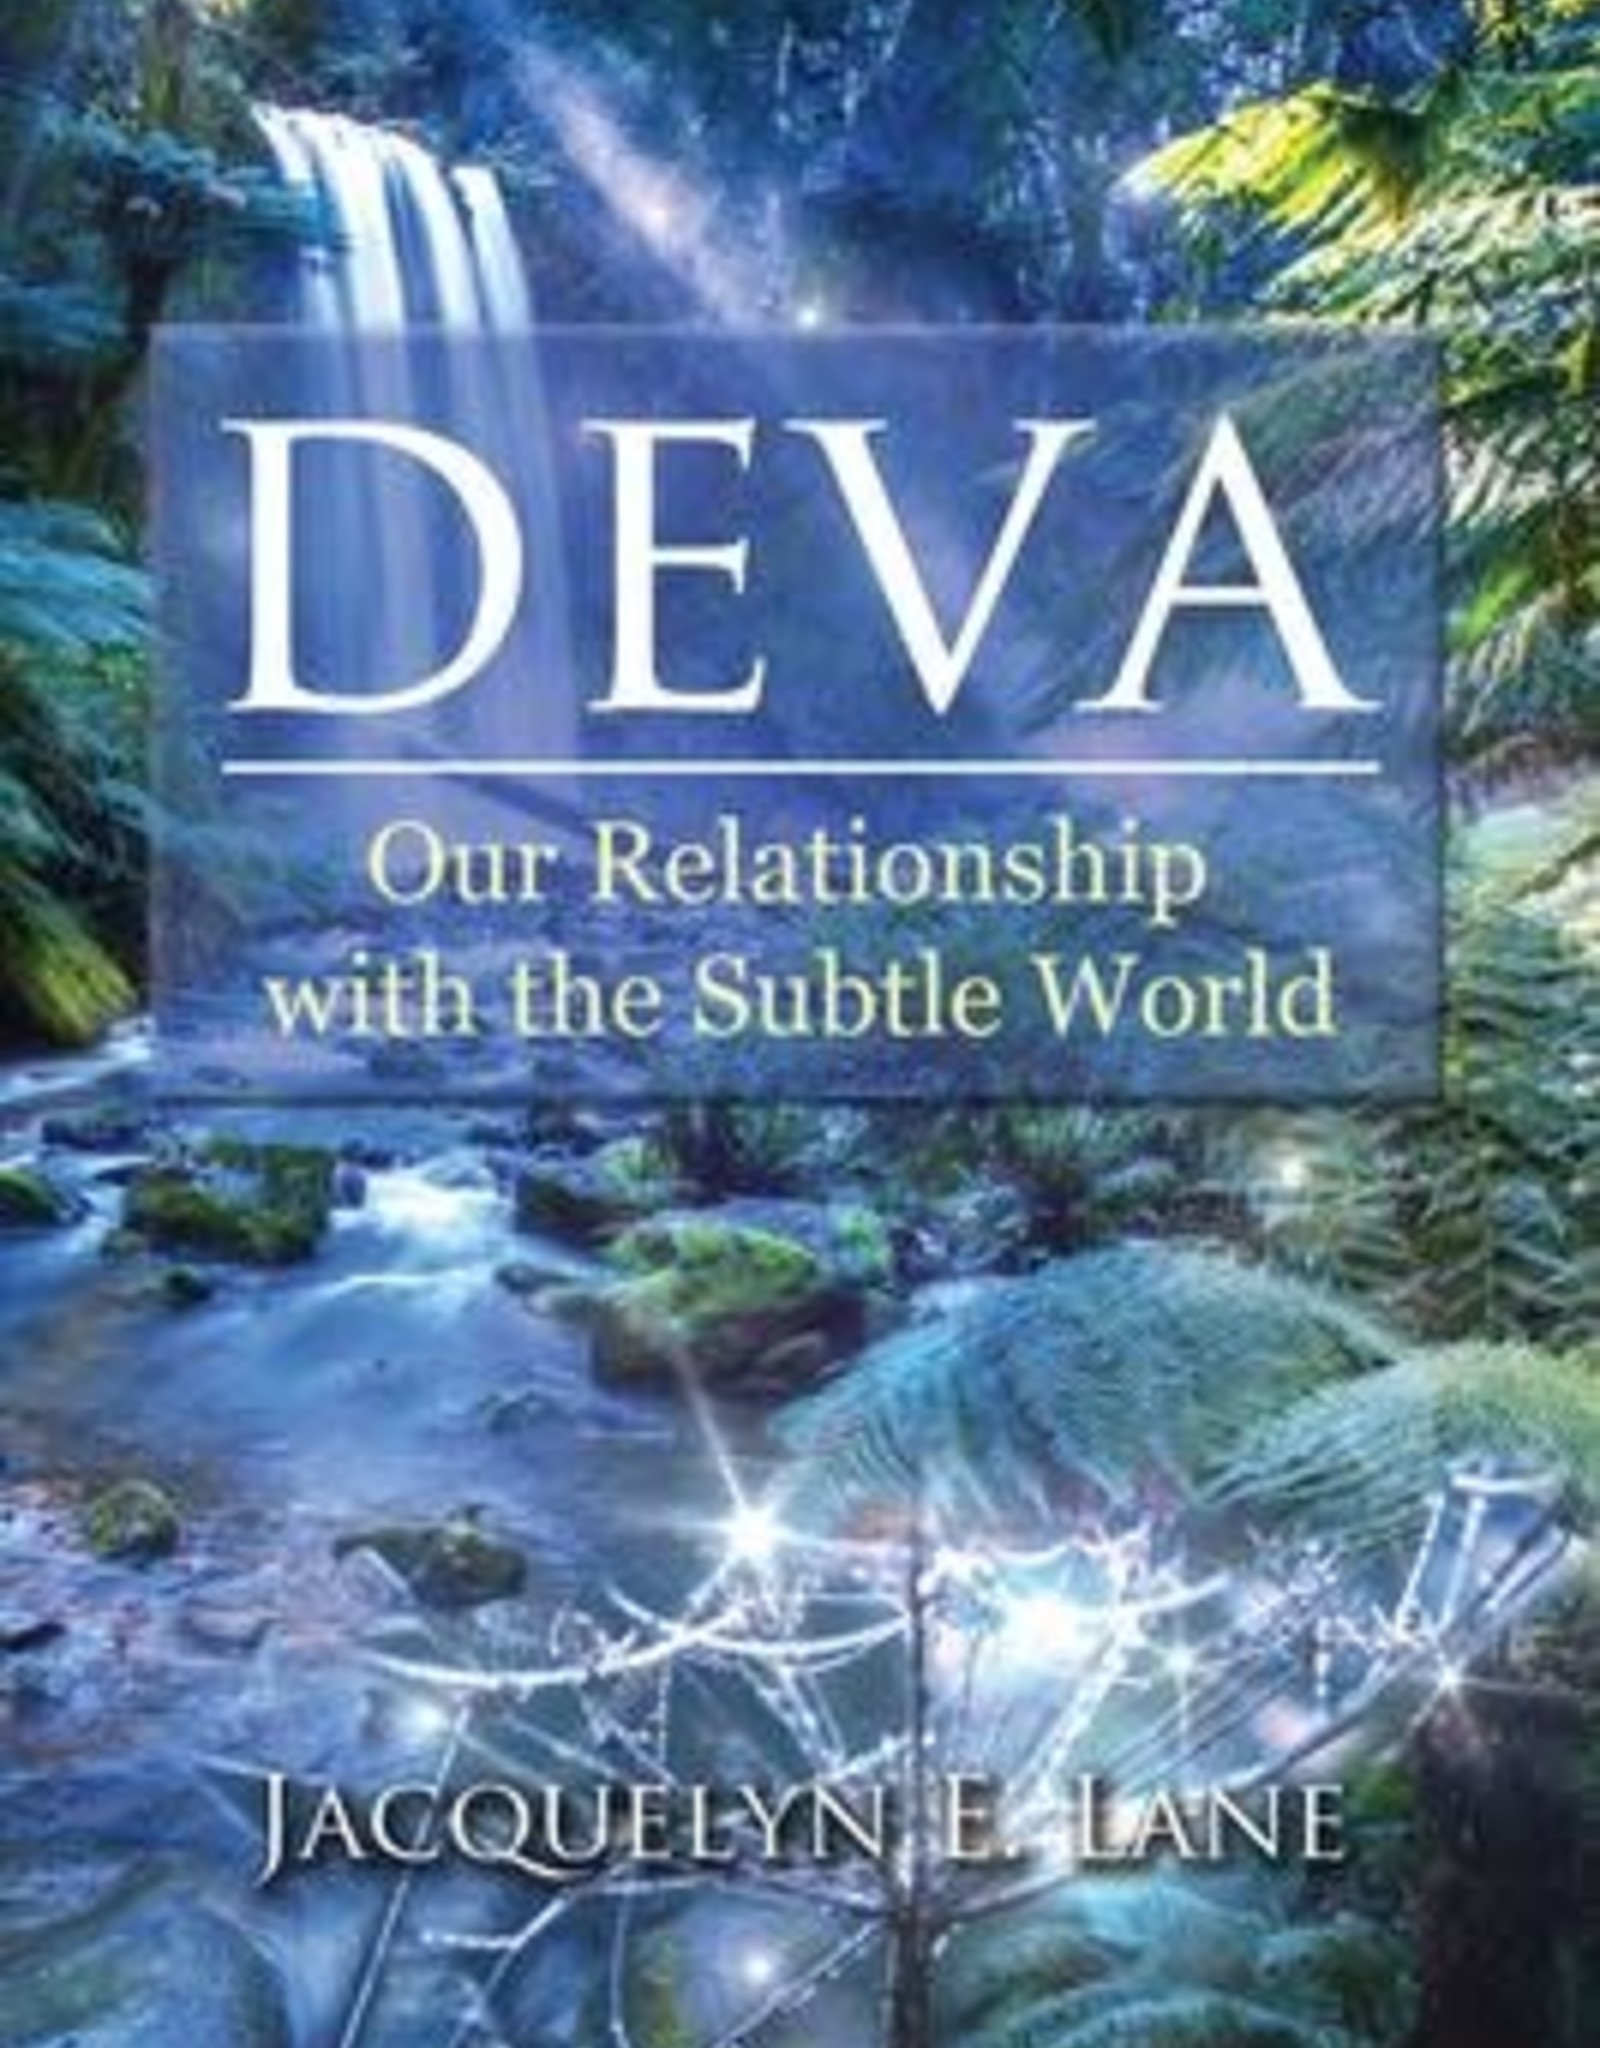 Deva ~ Our Relationship with the Subtle World